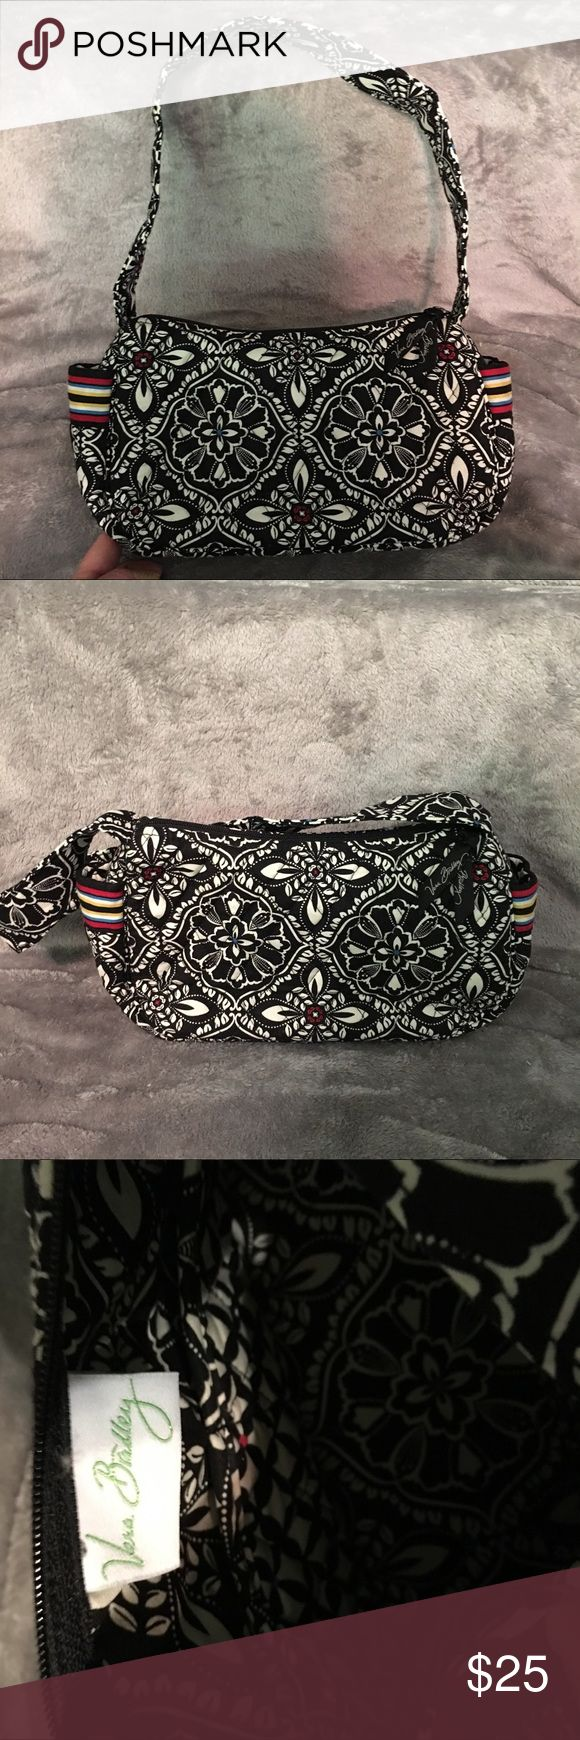 New without tags Vera Bradley black and white bag Never used retired pattern black and white flowers with red and blue middles .Beautiful pattern Vera Bradley Bags Shoulder Bags